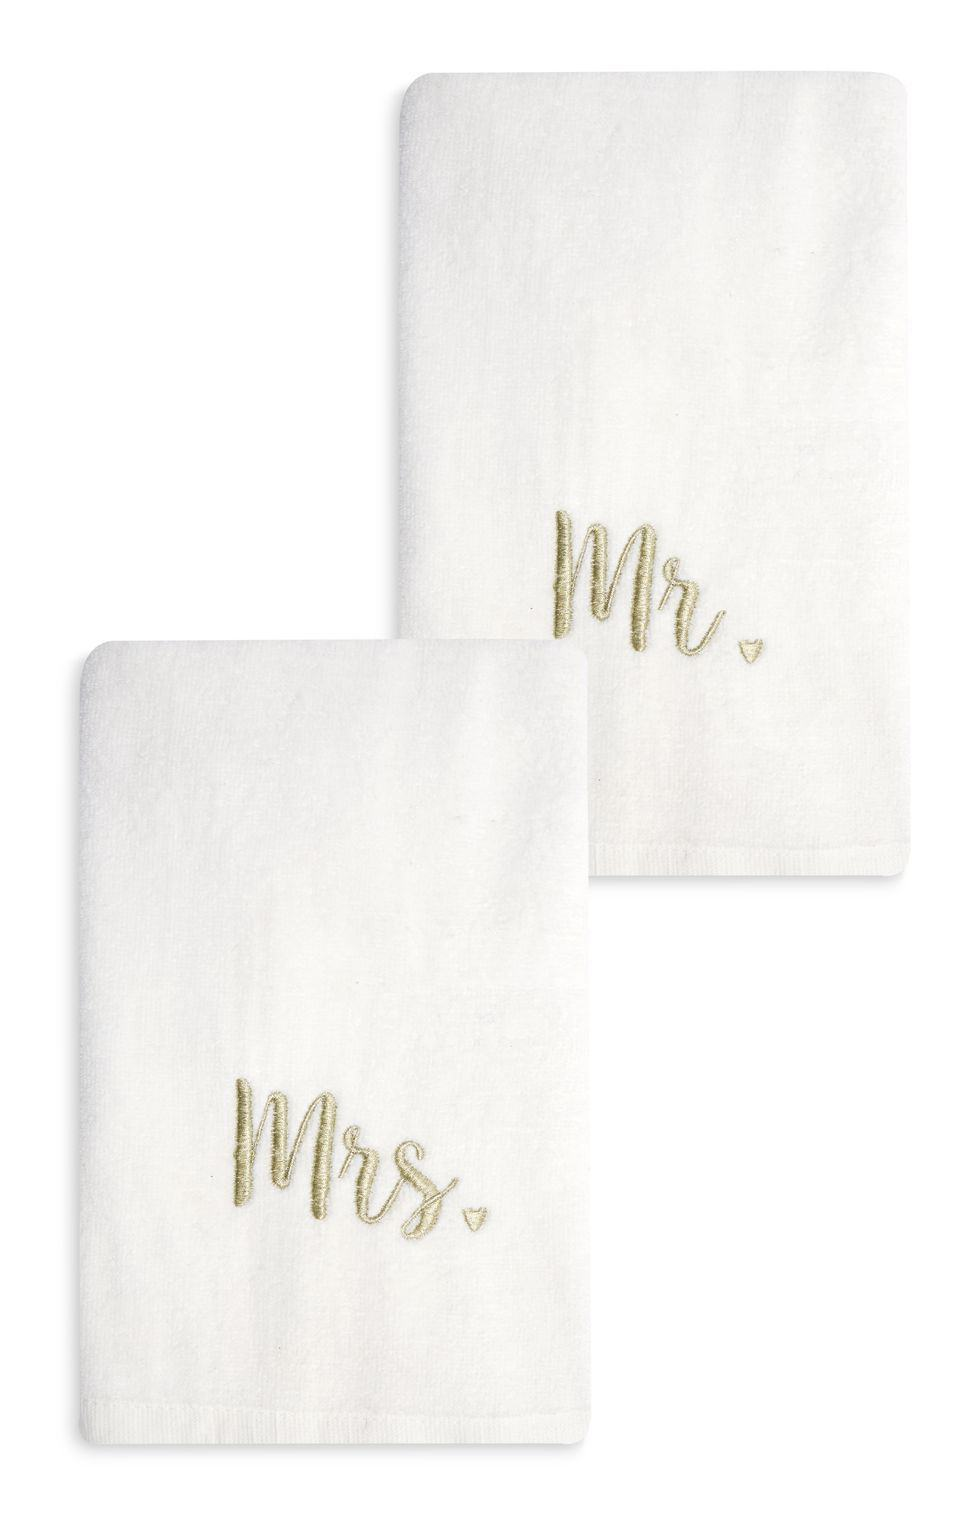 primark wedding towels